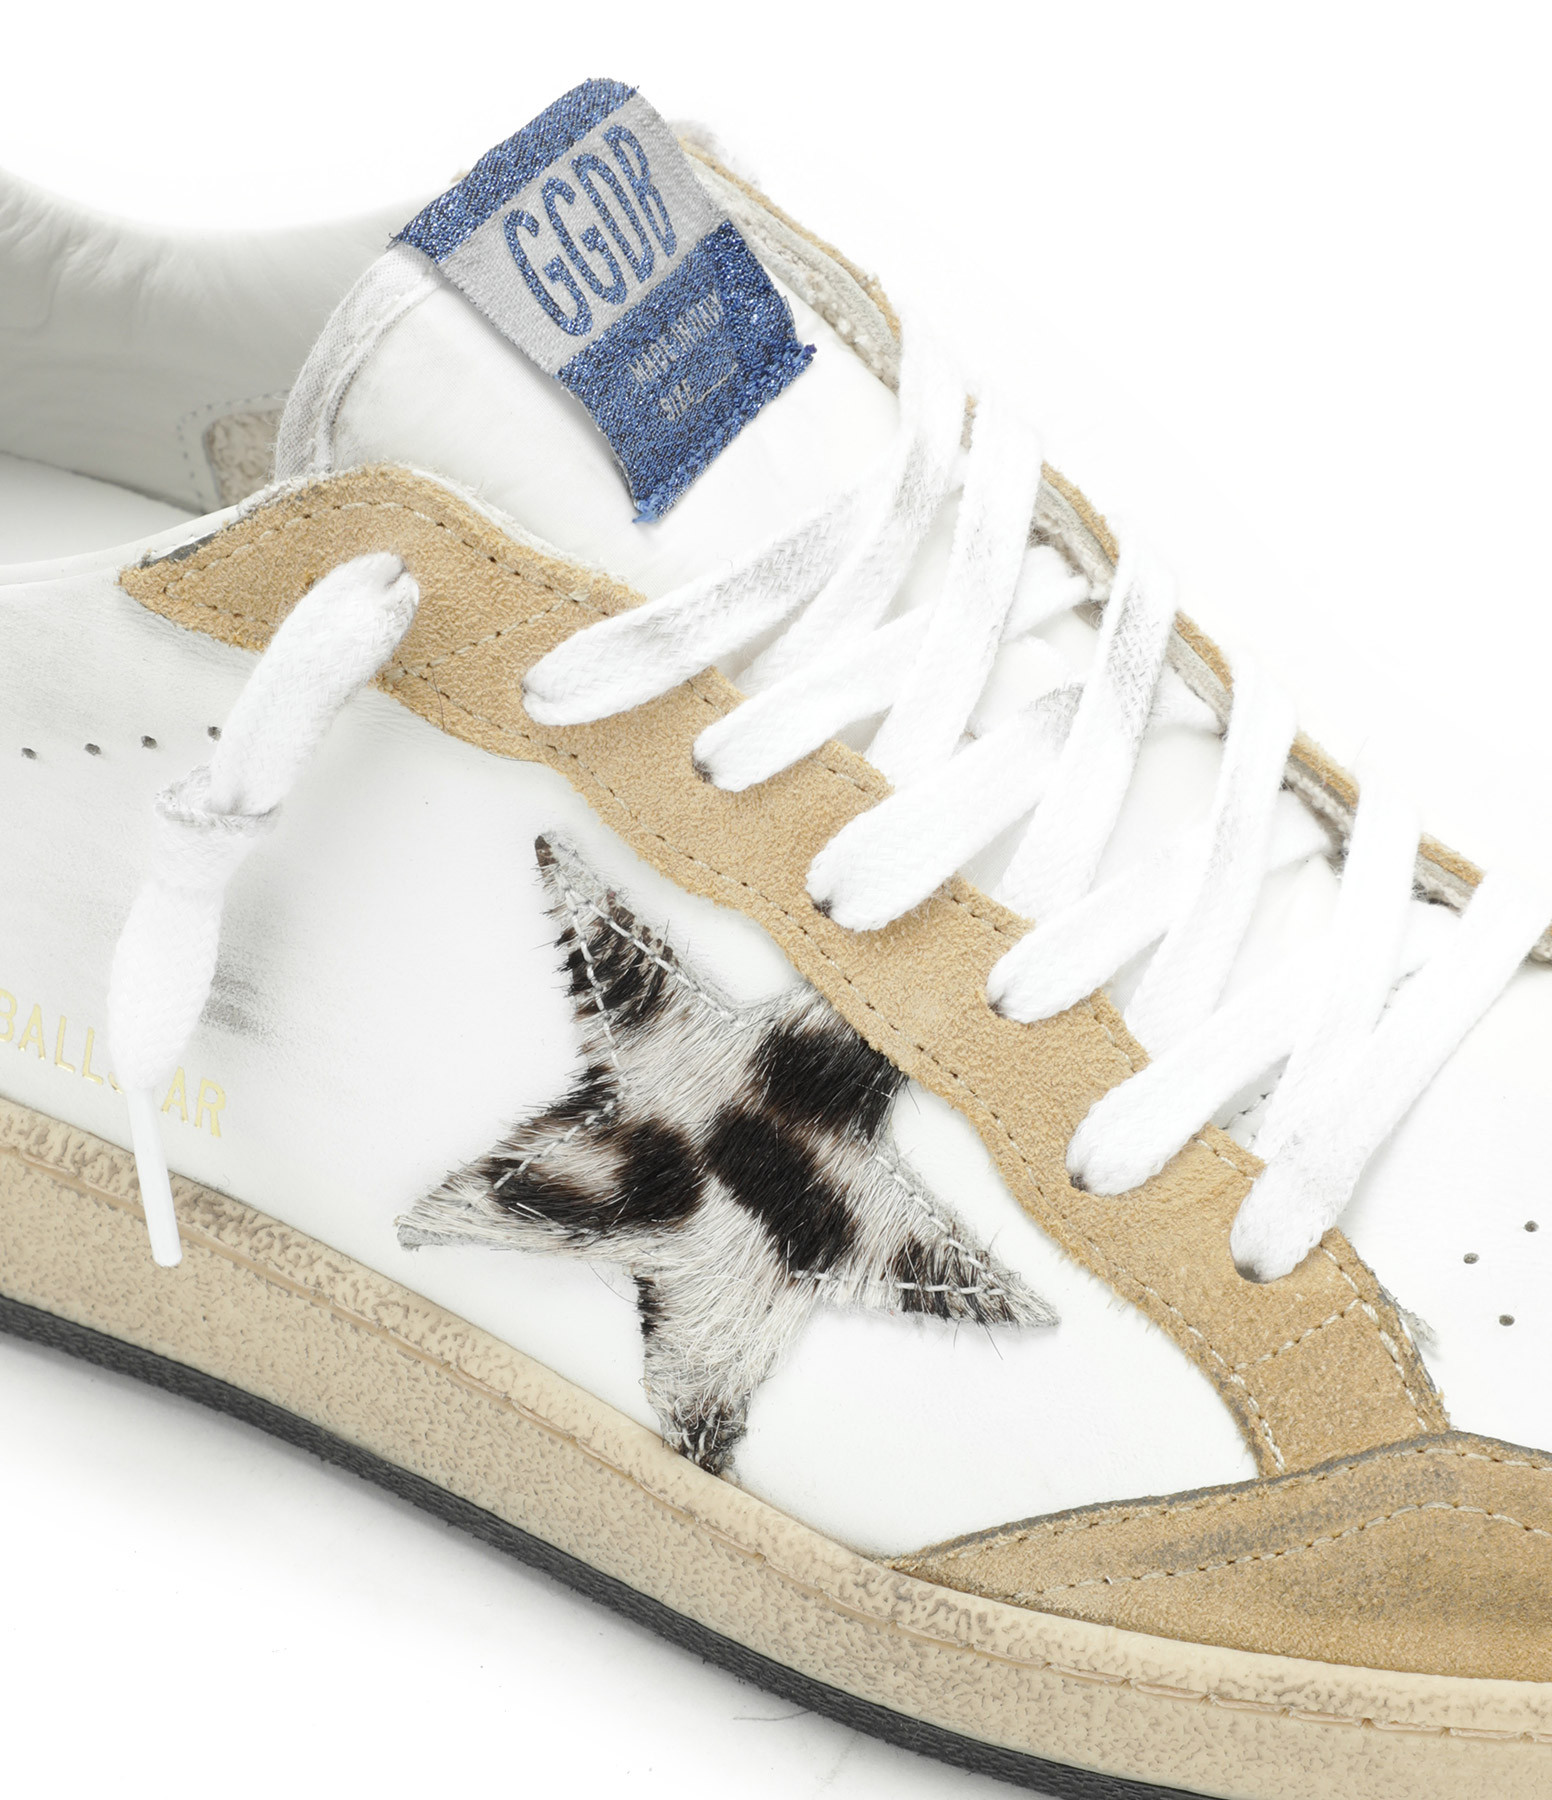 GOLDEN GOOSE - Baskets Ball Star Cuir Cappuccino Horsy Léopard